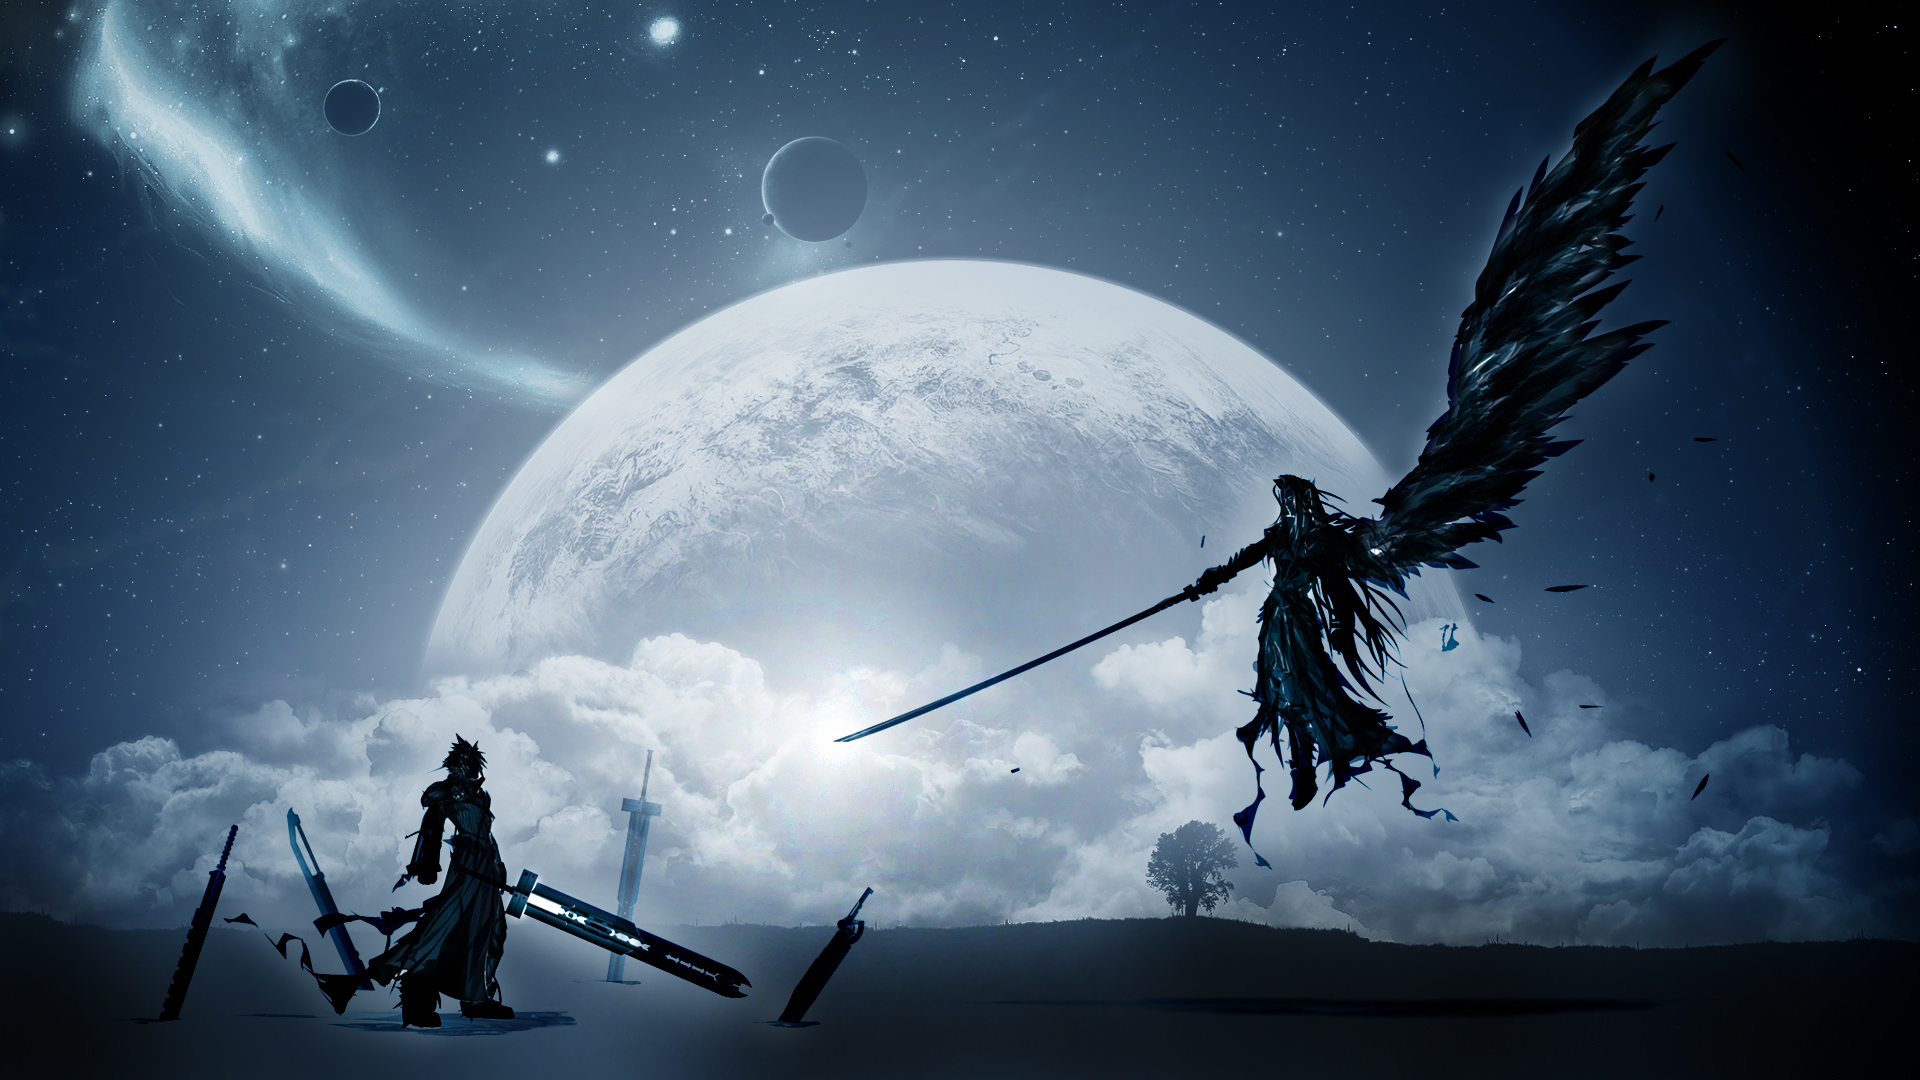 Cloud Vs Sephiroth wallpaper   1179644 1920x1080